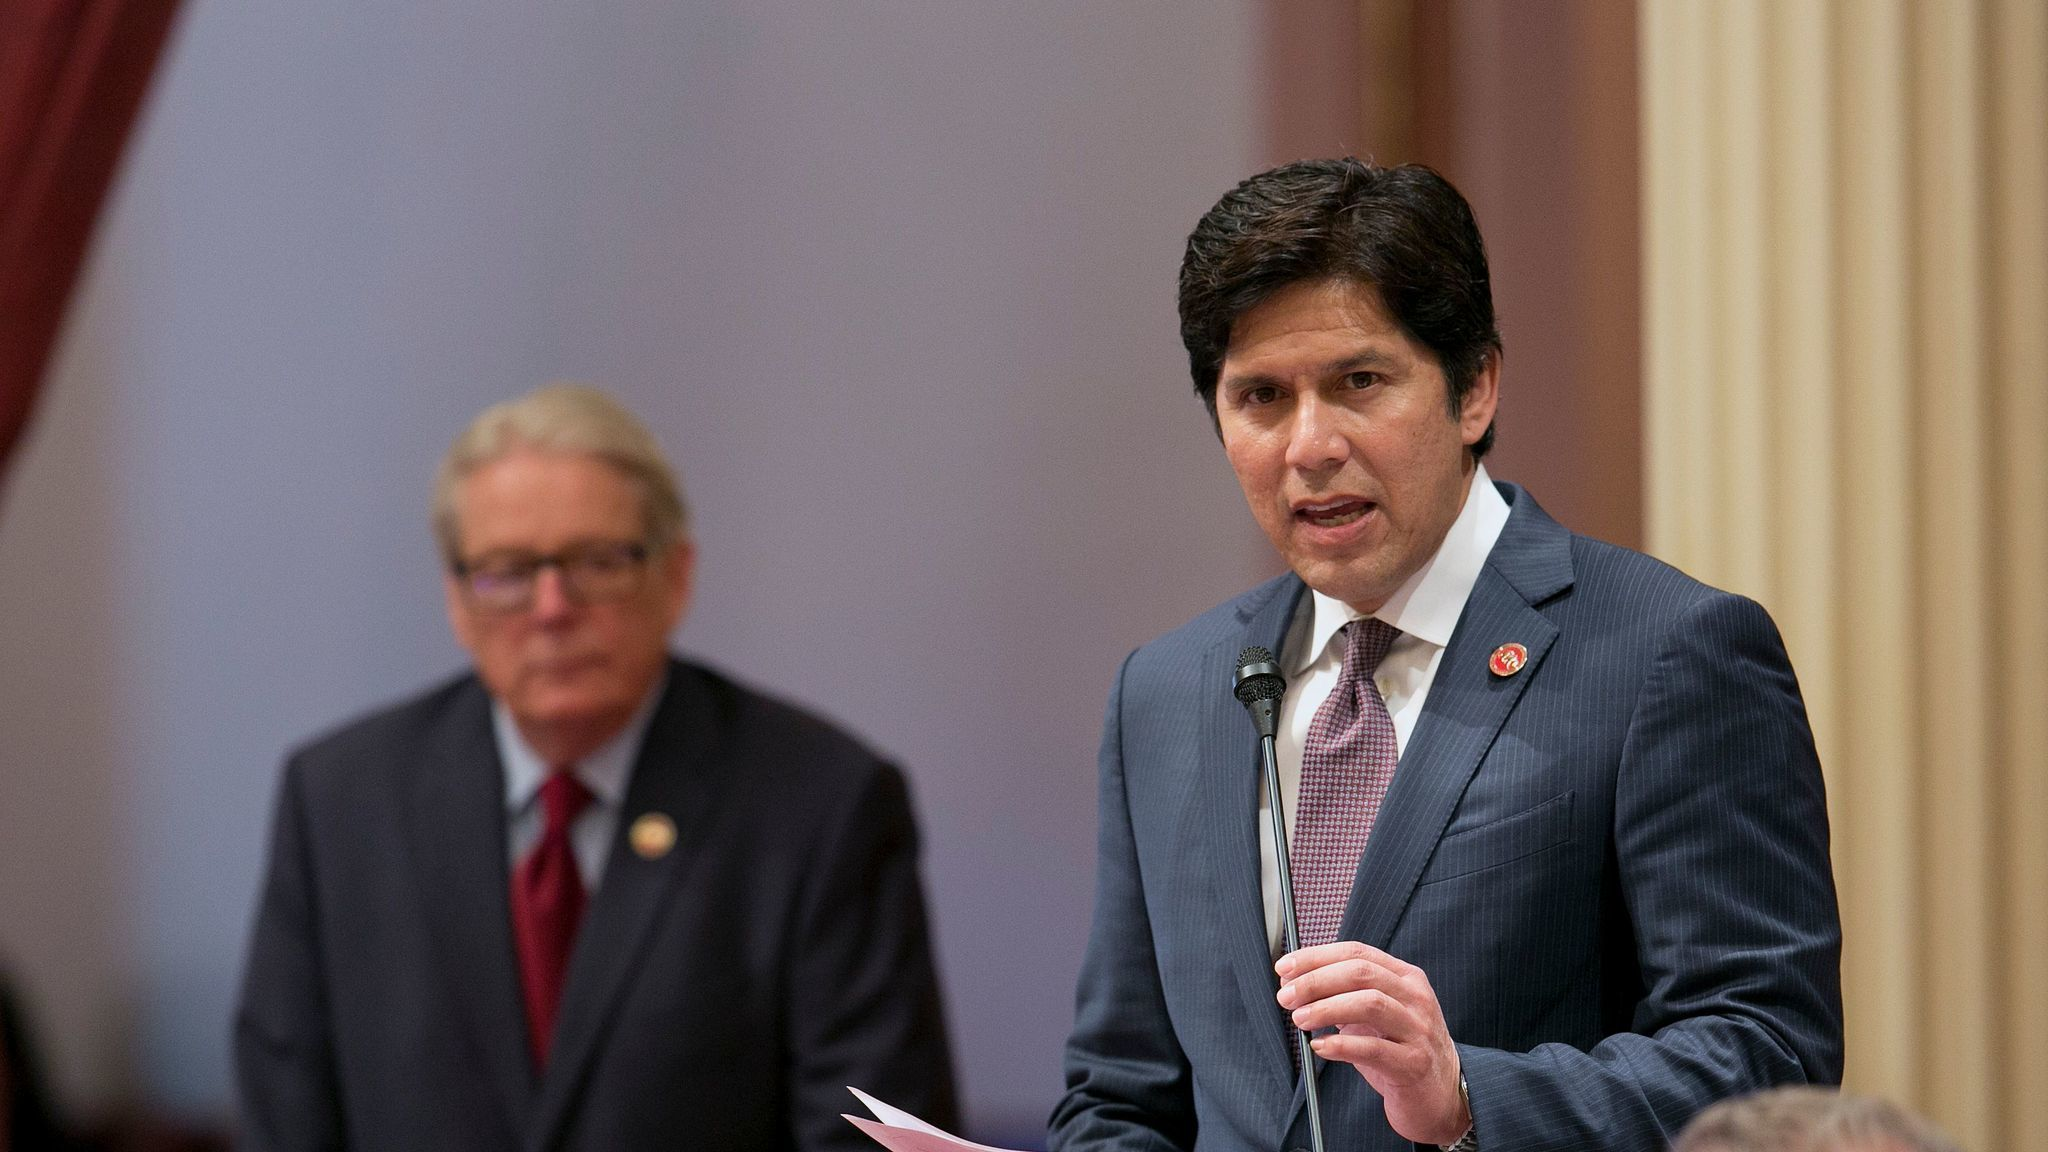 State Senate President Pro Tem Kevin de León, D-Los Angeles, speaks during the last regular Senate floor session of the year. (Rich Pedroncelli / AP)